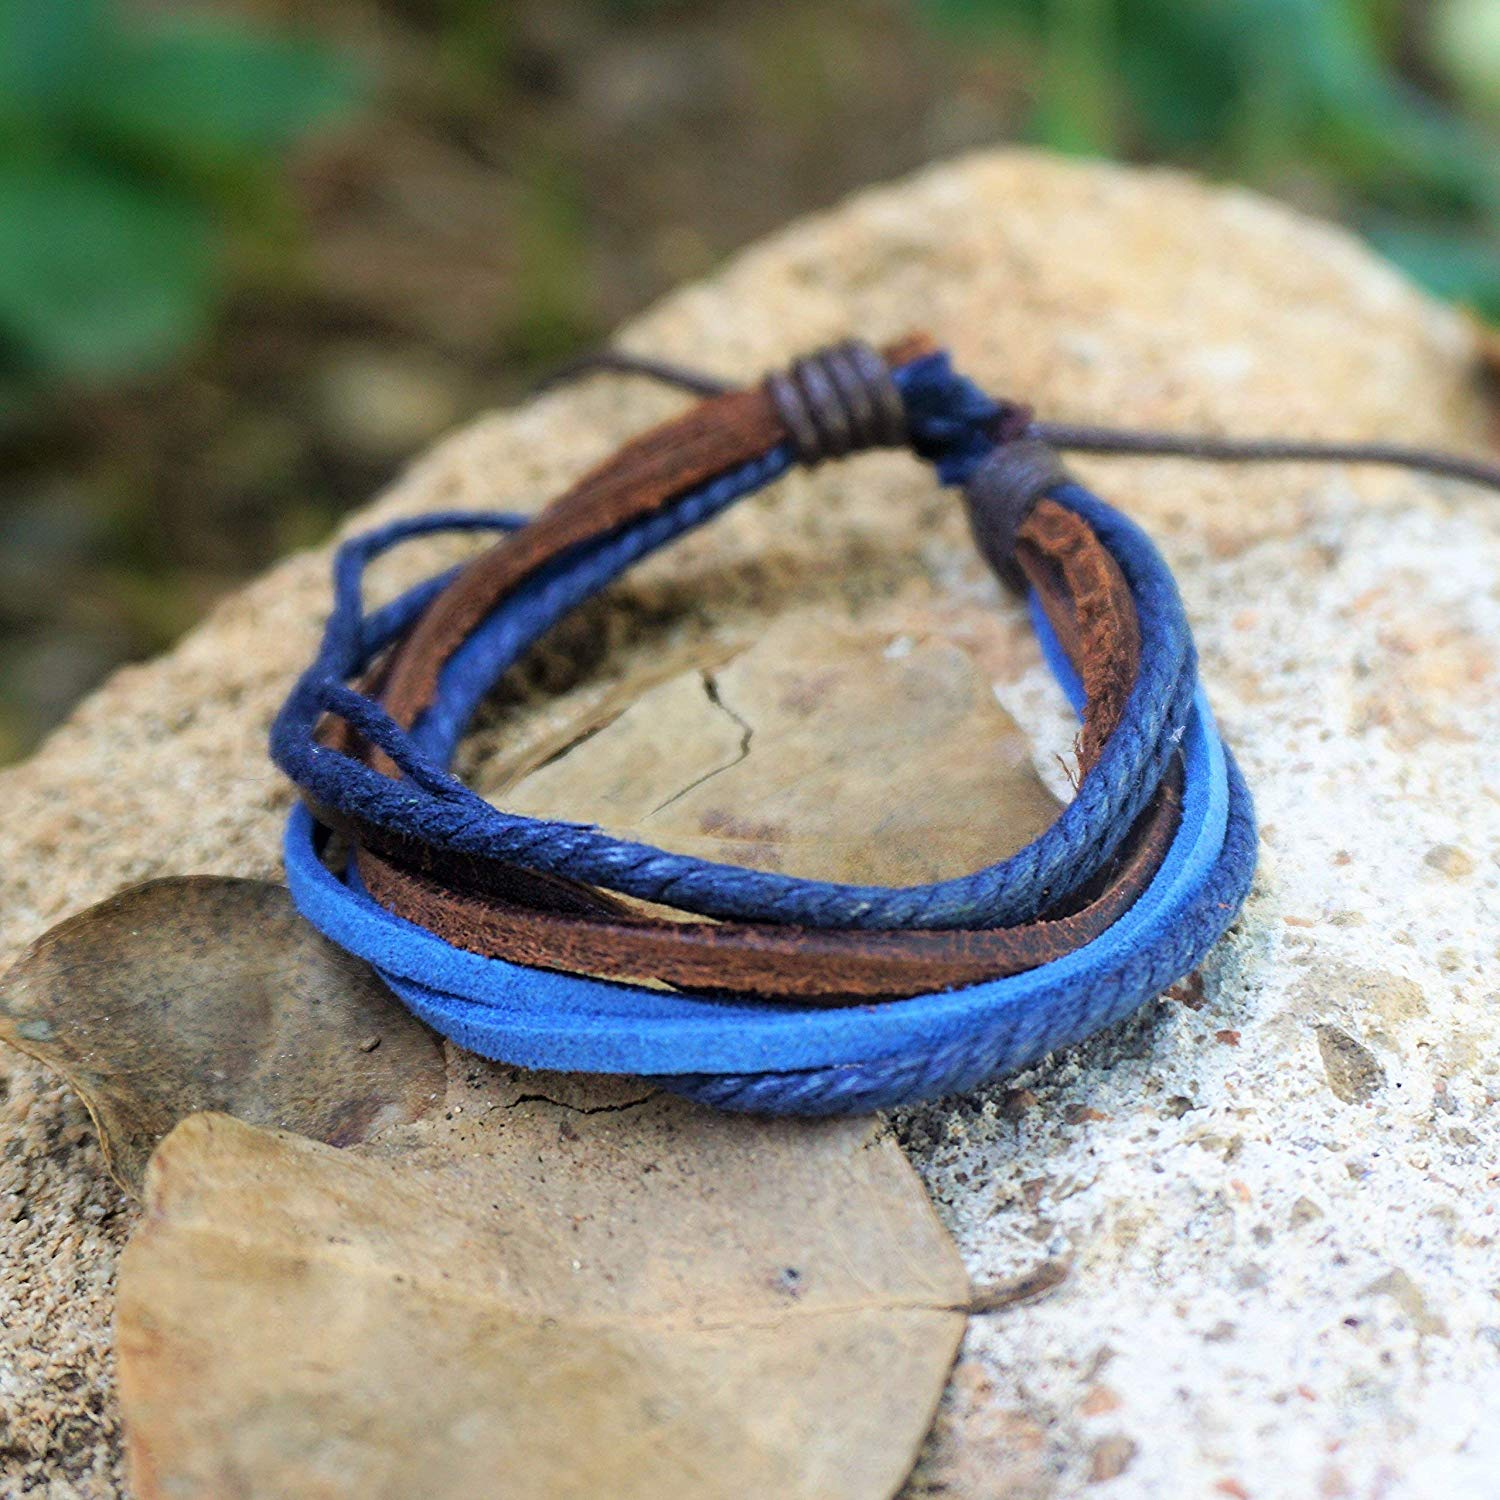 BARBARI Jewelry Blue Leather Cords Bracelet | Handmade Gift for Him and Her! High Quality Handmade Genuine Leather Wristband, Wrap Blue and Brown Cords Bracelet